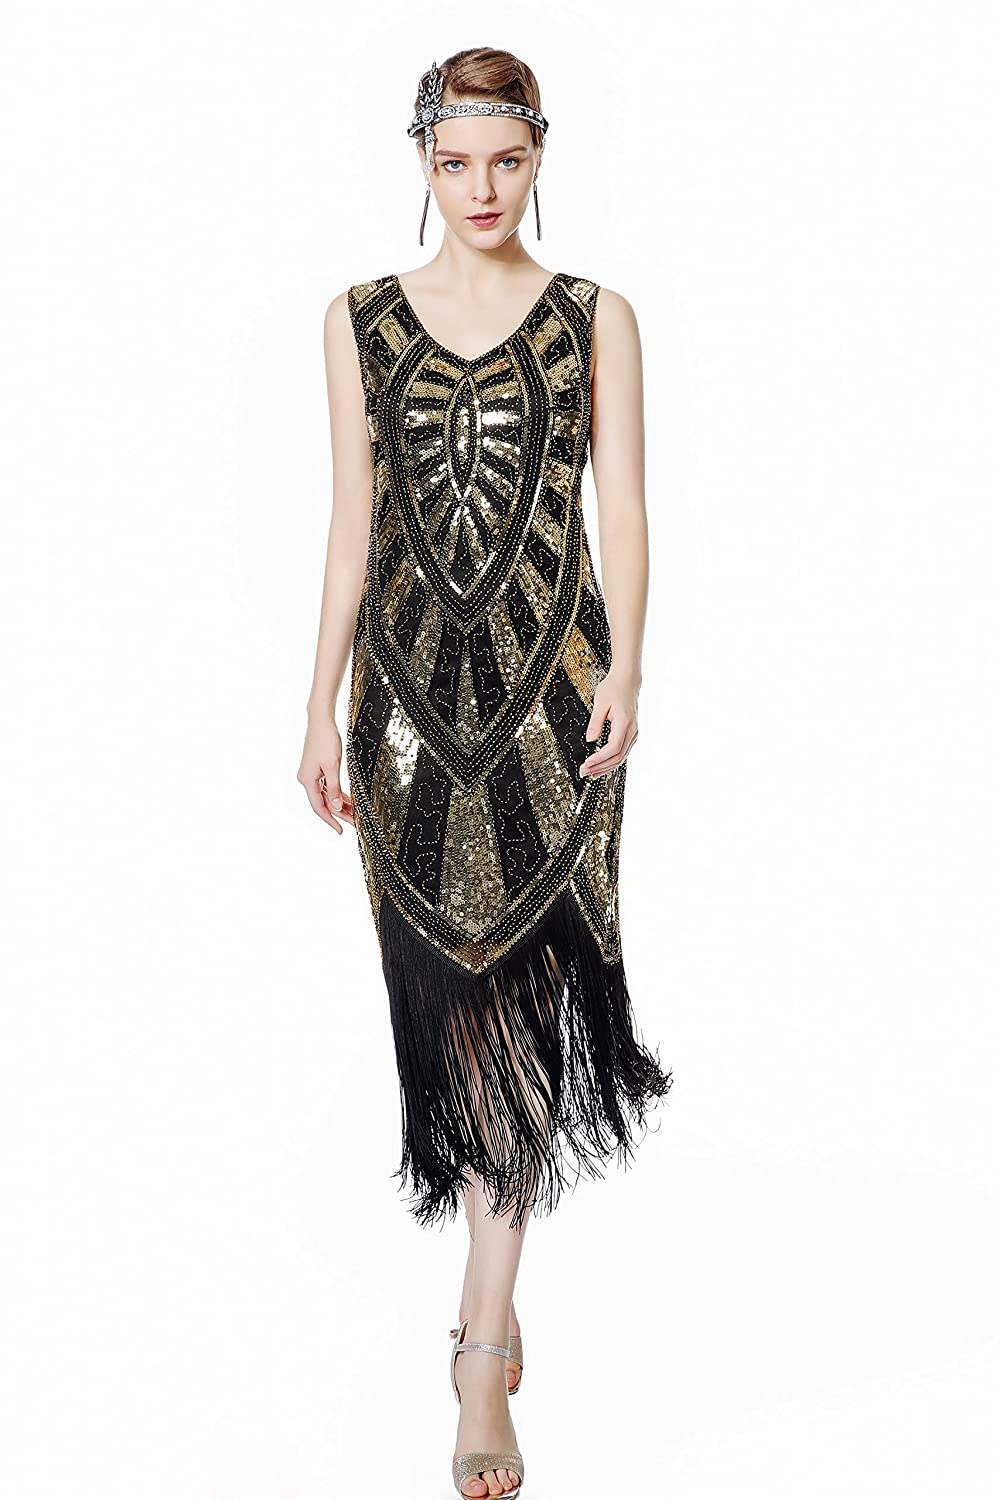 1920s Costumes: Flapper, Great Gatsby, Gangster Girl Metme 1920s Inspired Fringe Embellished Gatsby Flapper Midi Dress Prom Party $25.49 AT vintagedancer.com